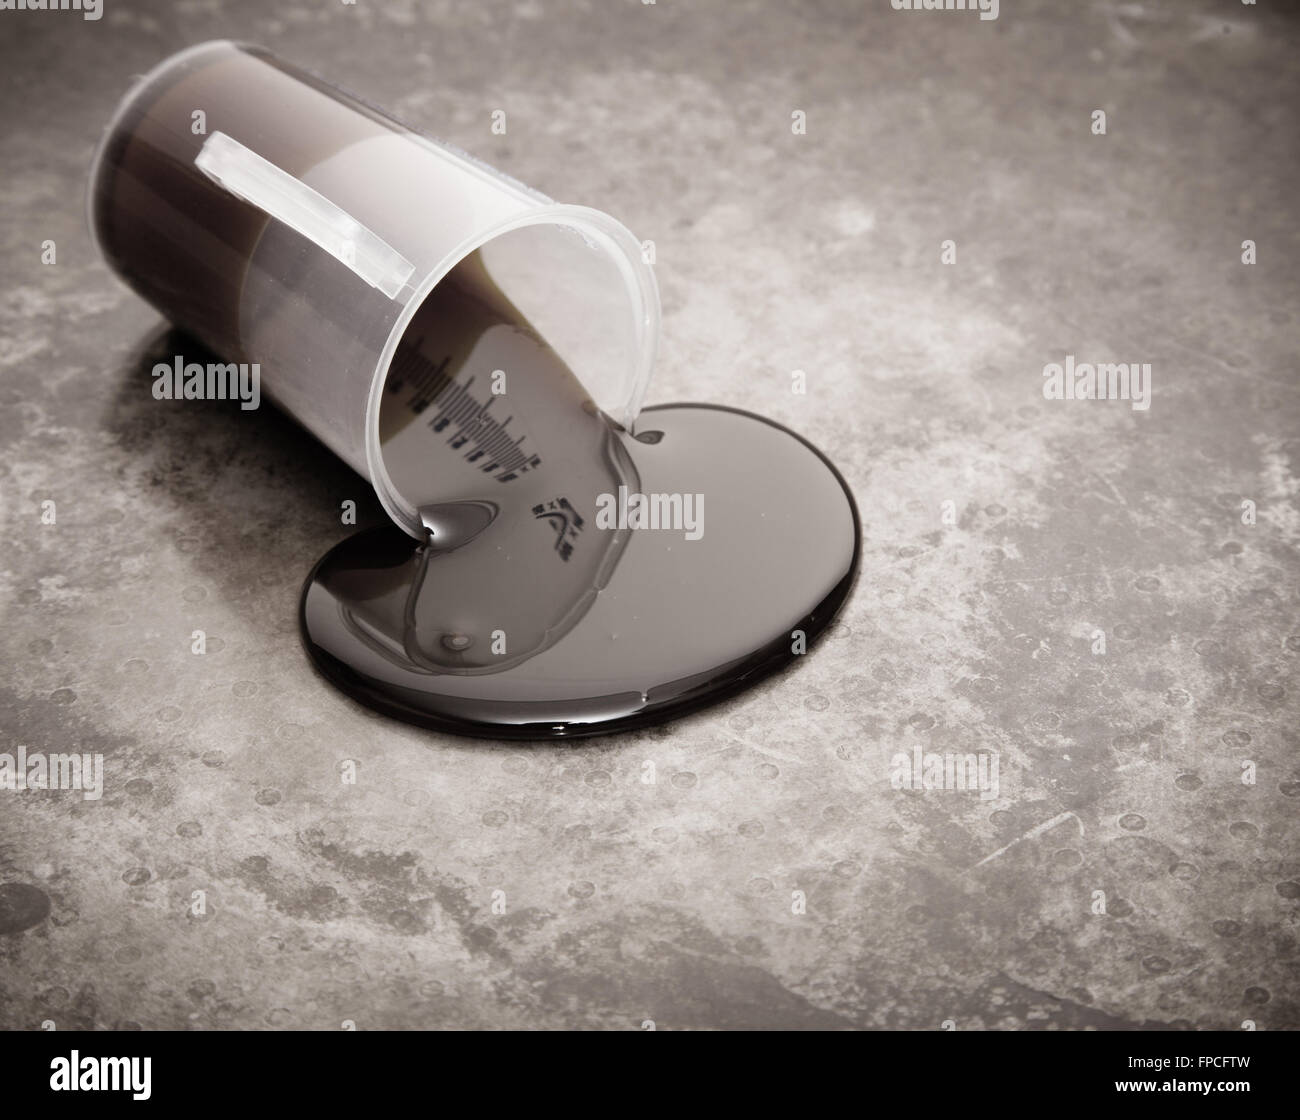 Crude oil spill on metal background - Stock Image